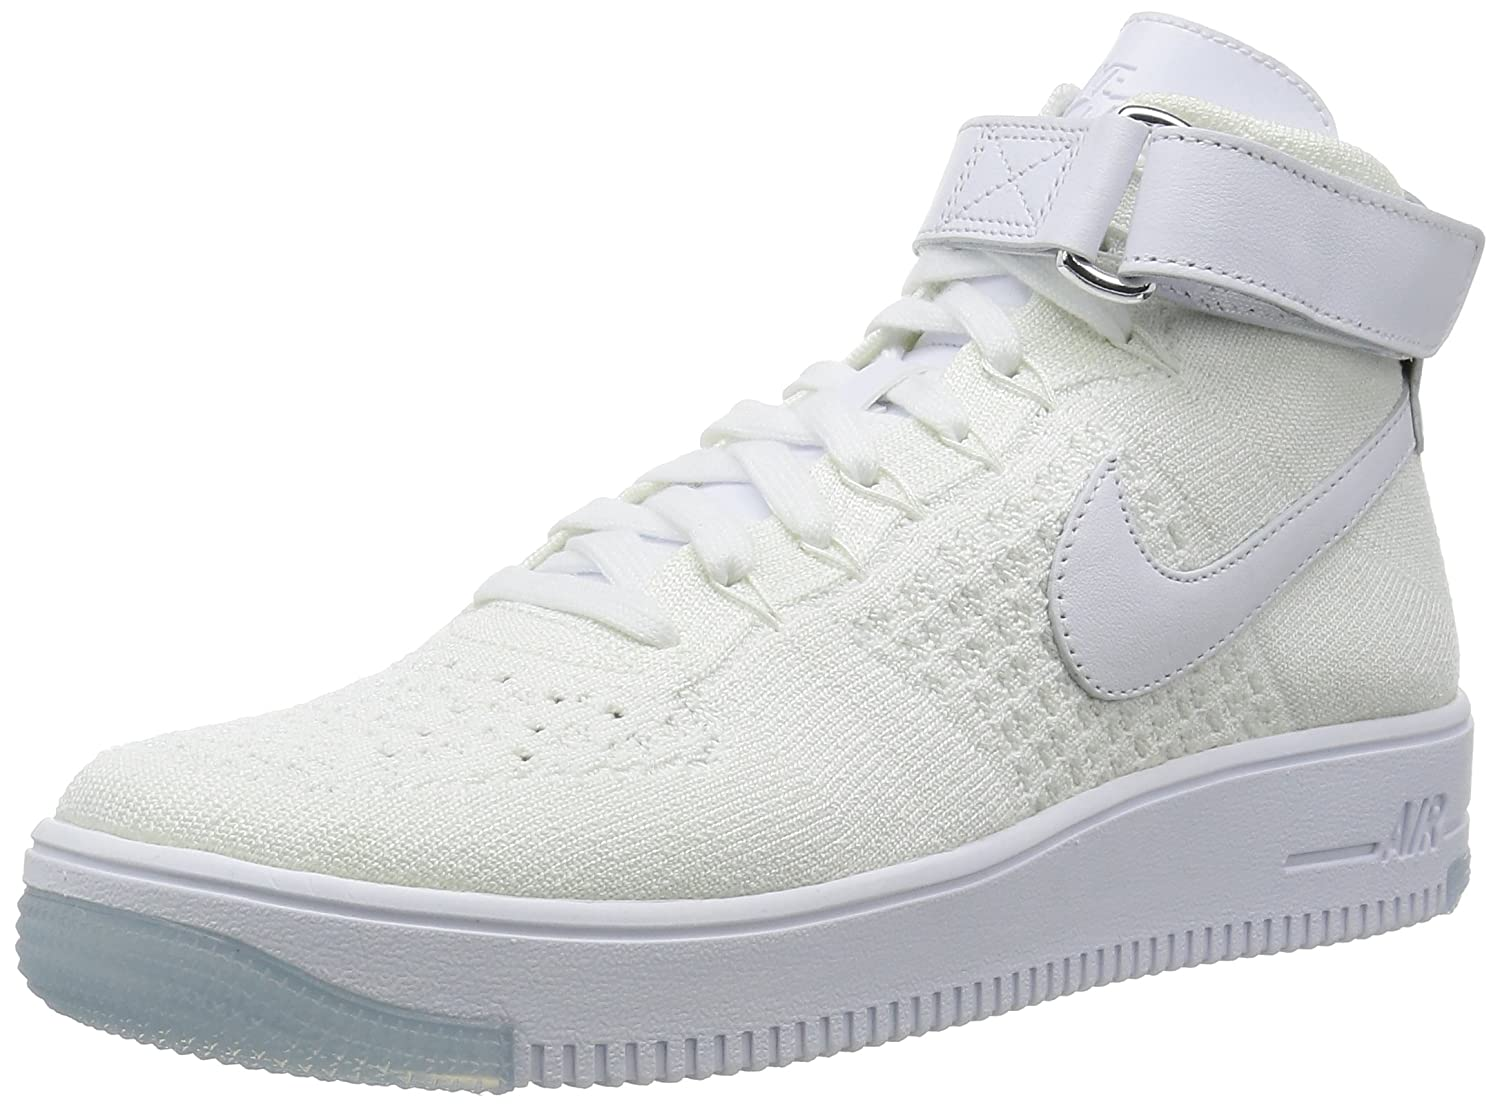 the best attitude 90066 146bf Nike Mens AF1 Ultra Flyknit Mid Mid Lightweight Fashion Sneakers